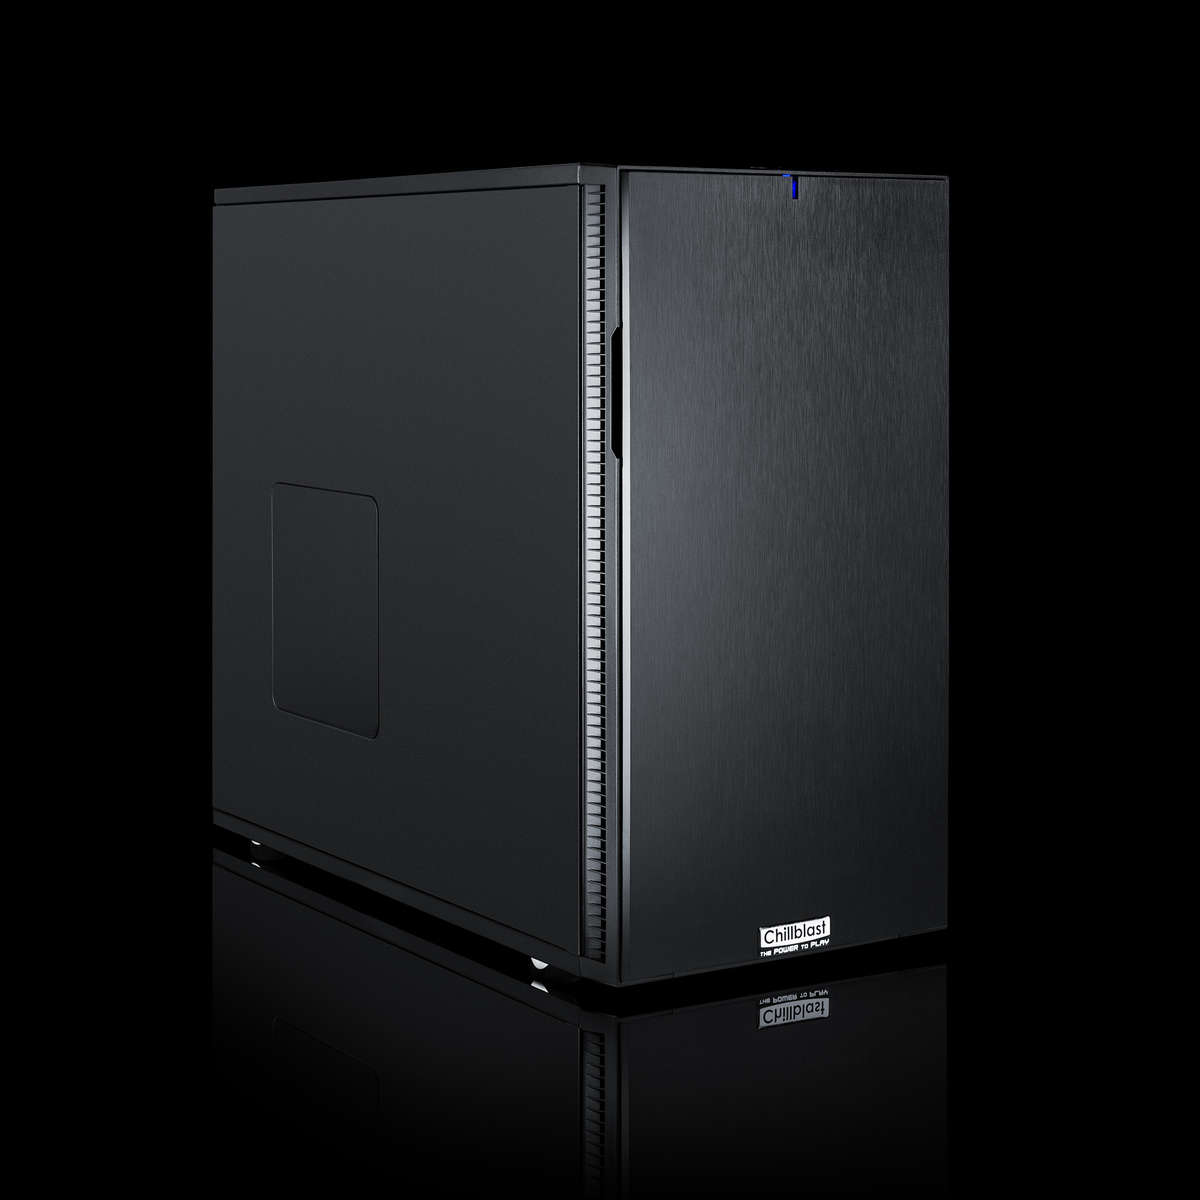 Chillblast Fusion Render OC II M4000 Professional 3D Editing Workstation